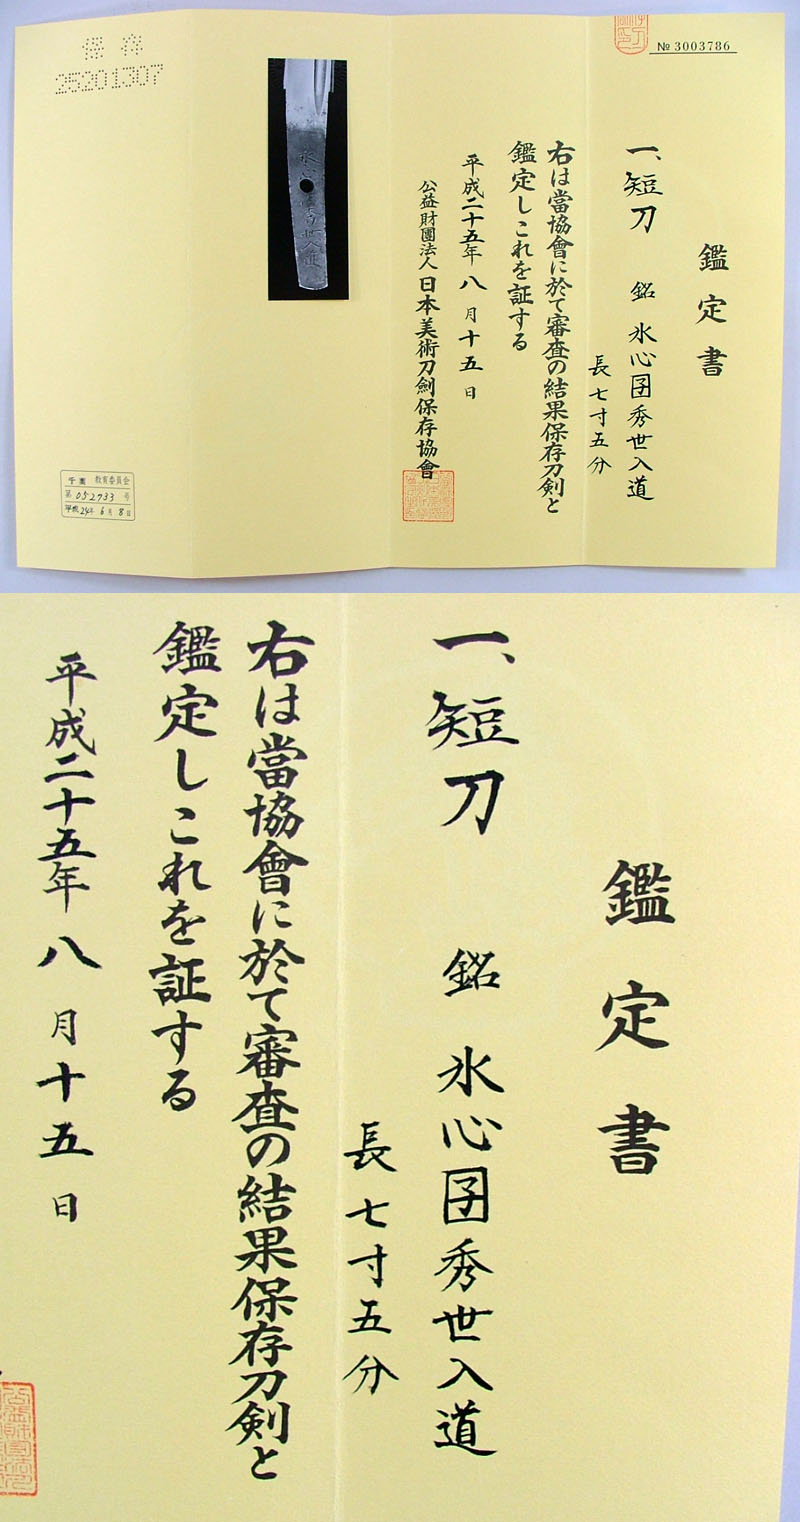 氷心子秀世入道 Picture of Certificate